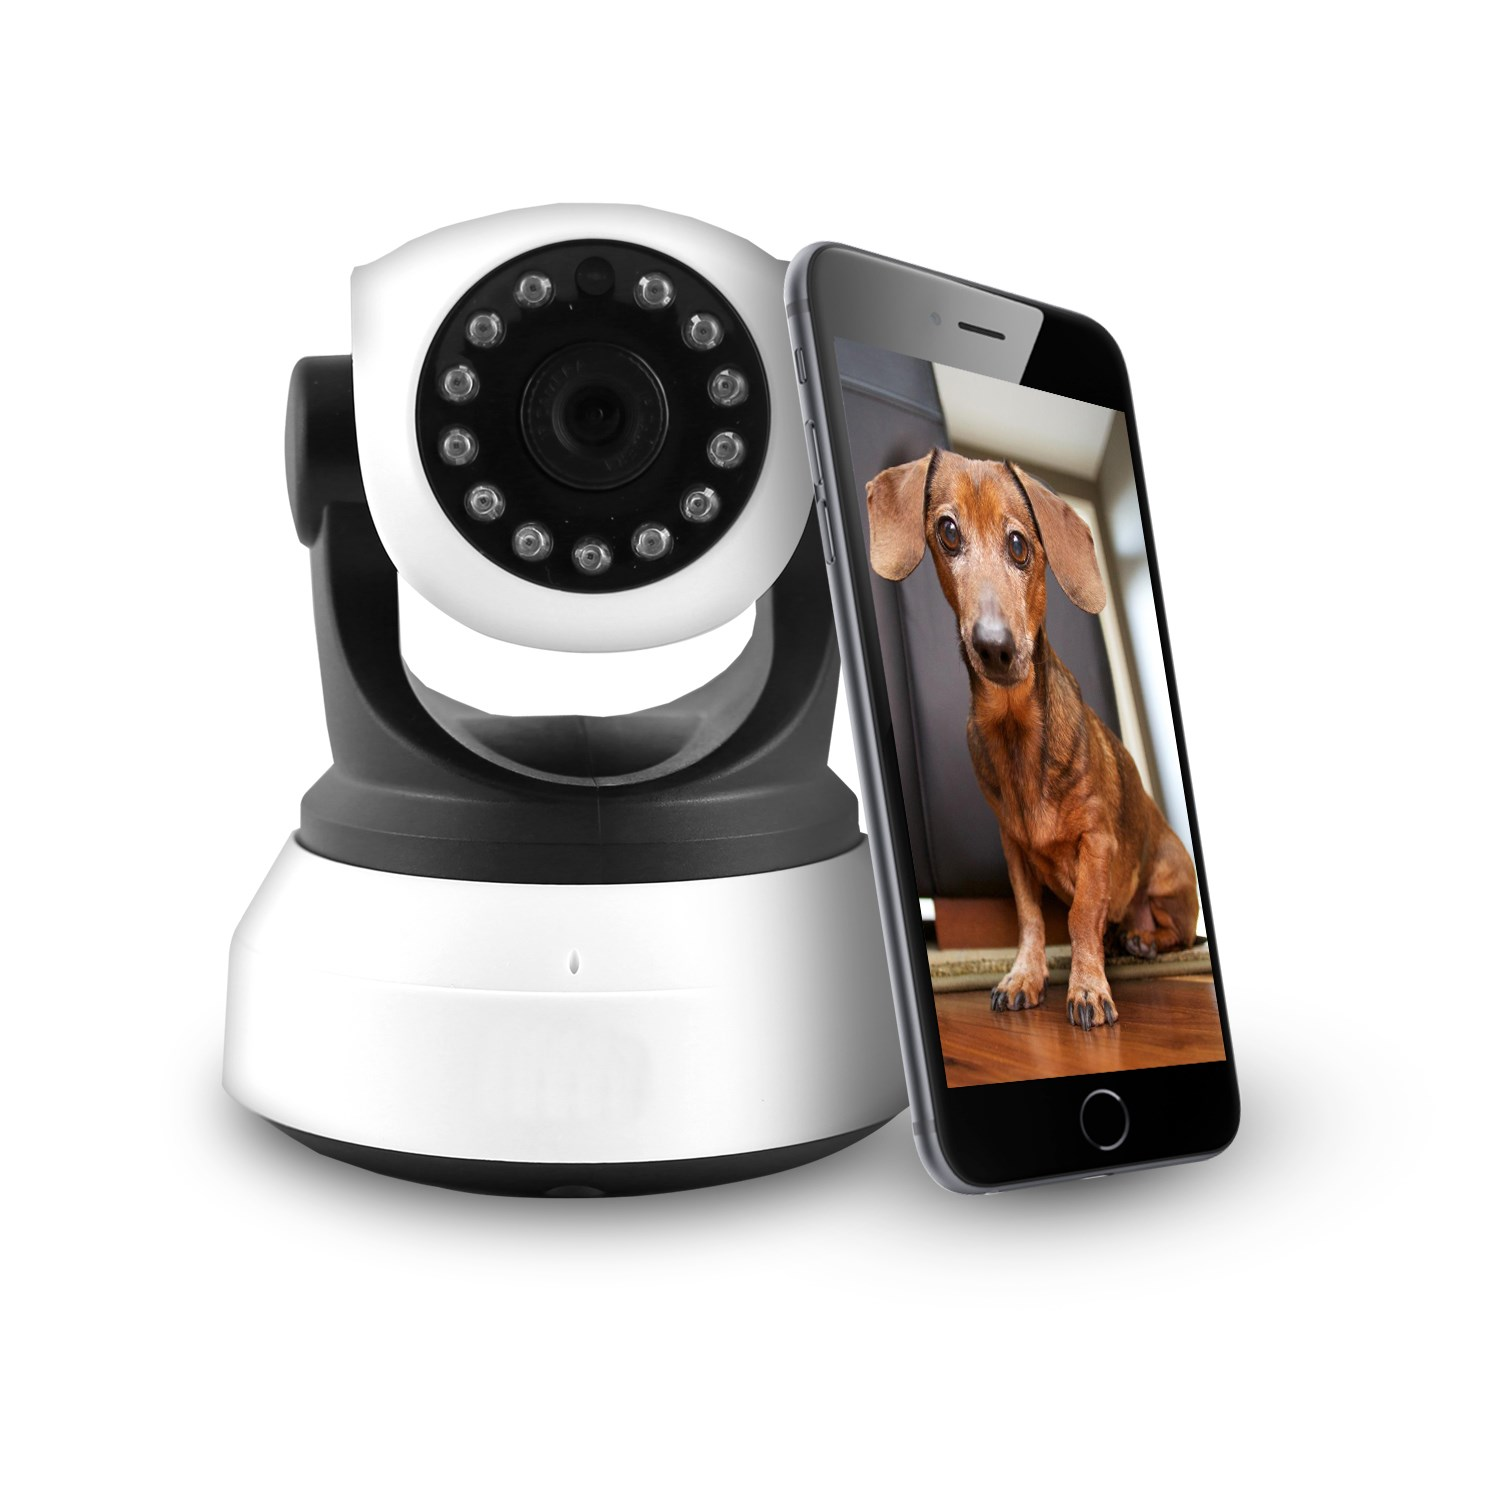 Electriq Hd 720p Wifi Pet Monitoring Pan Tilt Zoom Camera